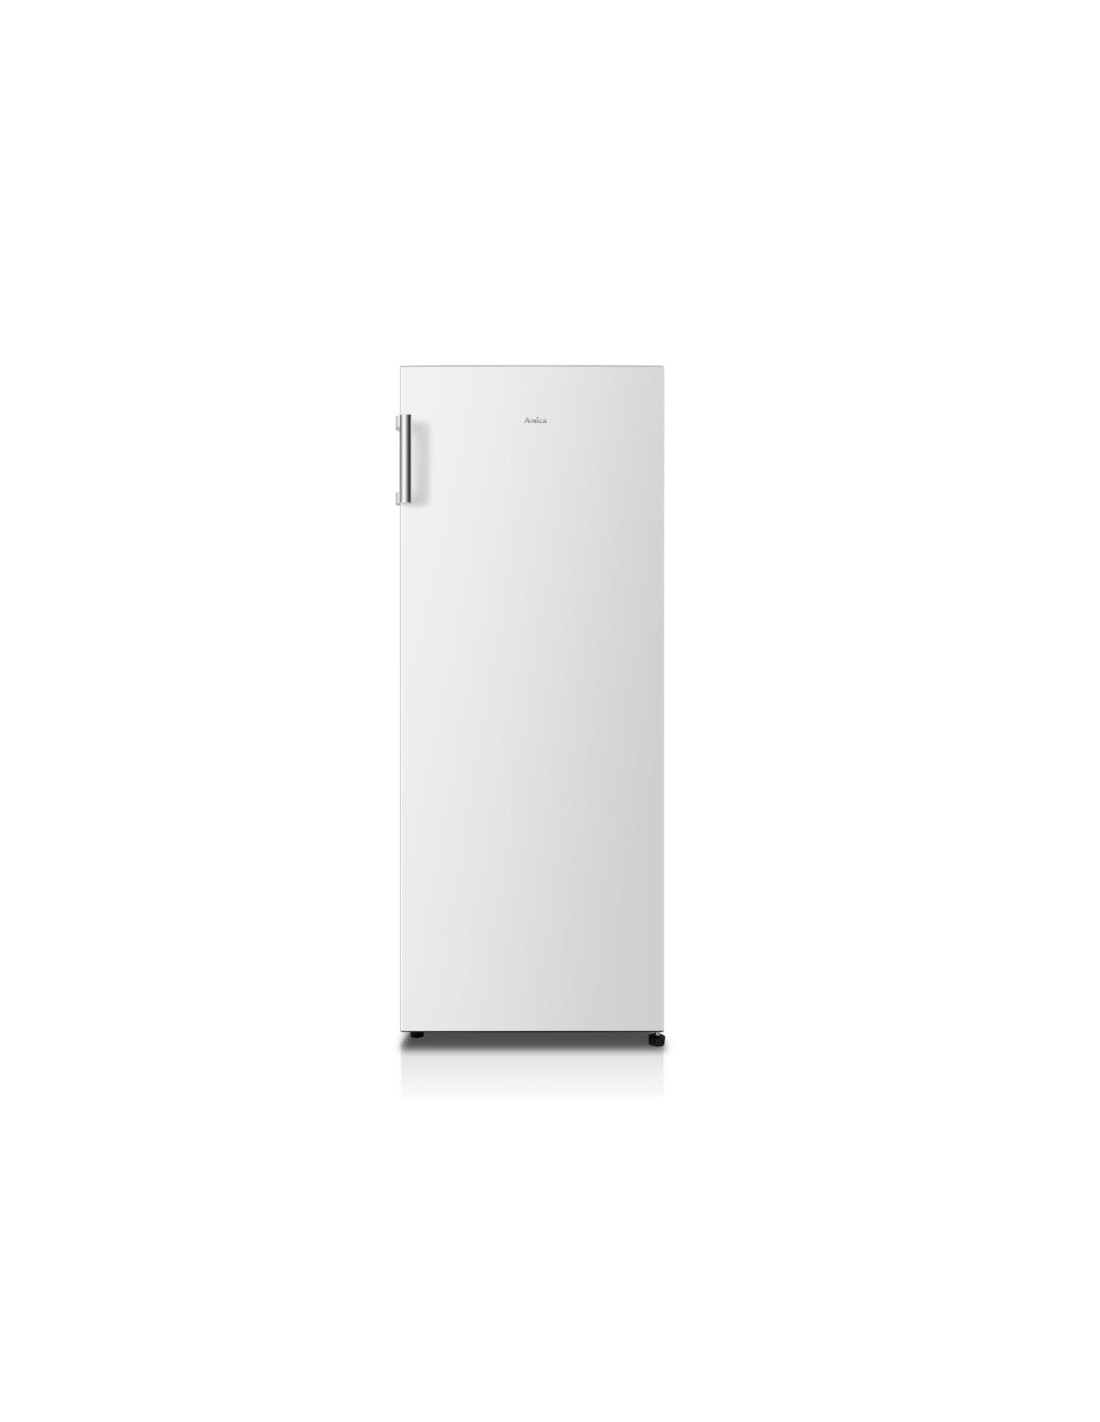 http://www.promo-electro.fr/1623-thickbox_default/congelateur-armoire-blanc360l-no-frost-siemens-gs58naw30.jpg